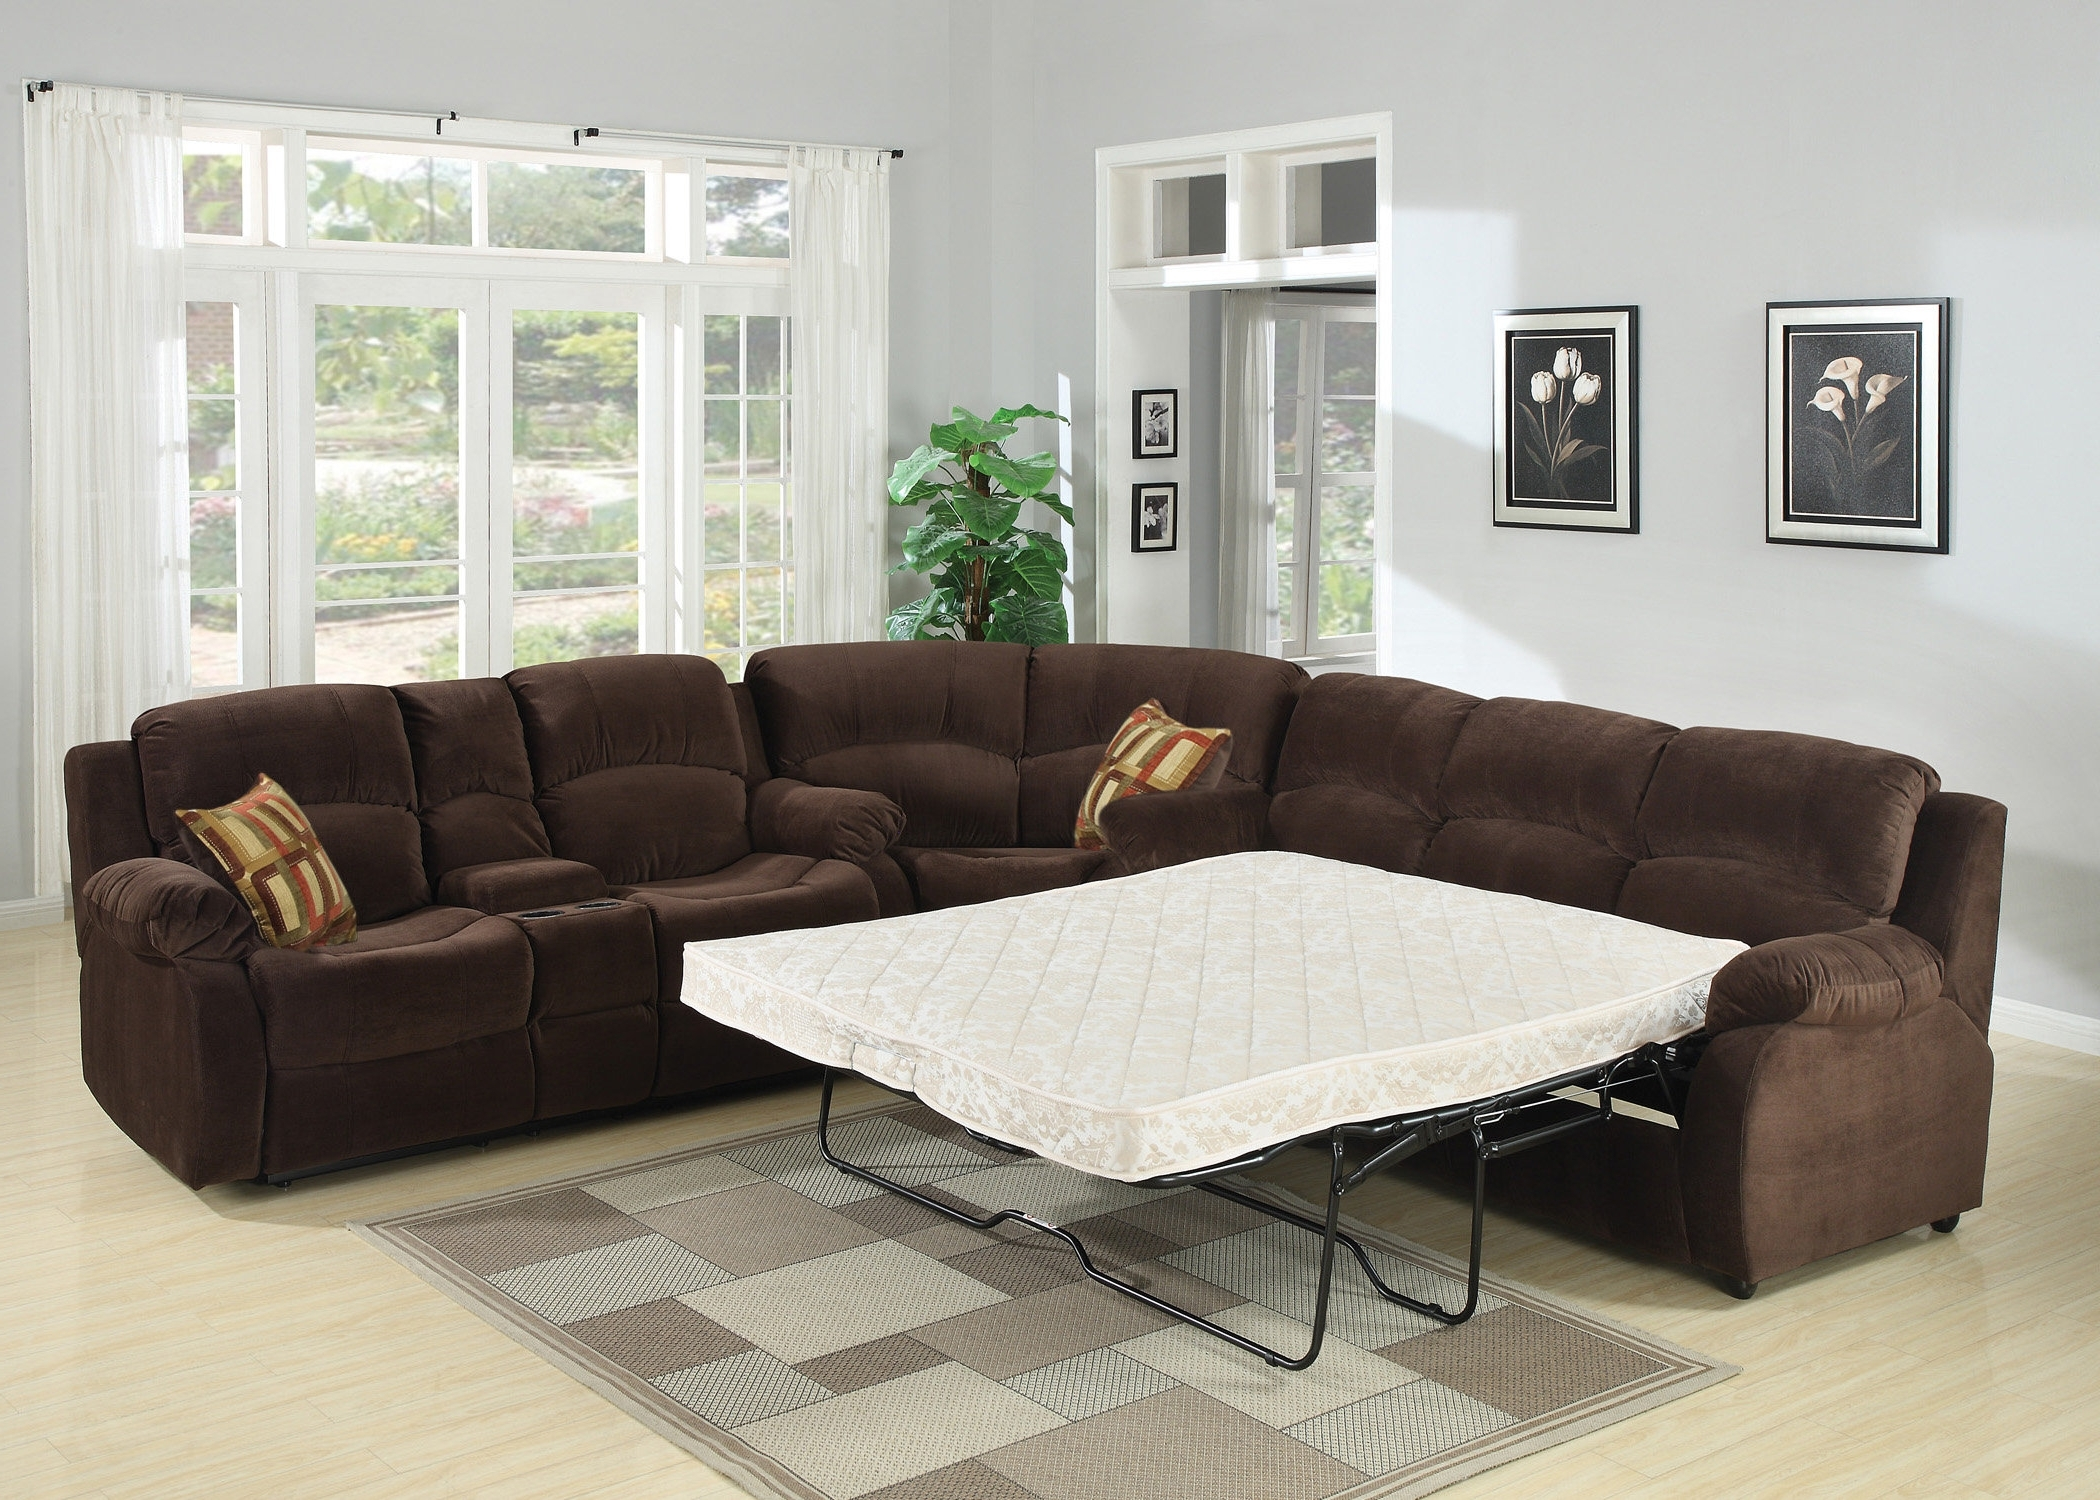 Wayfair With Regard To Down Filled Sectional Sofas (View 20 of 20)